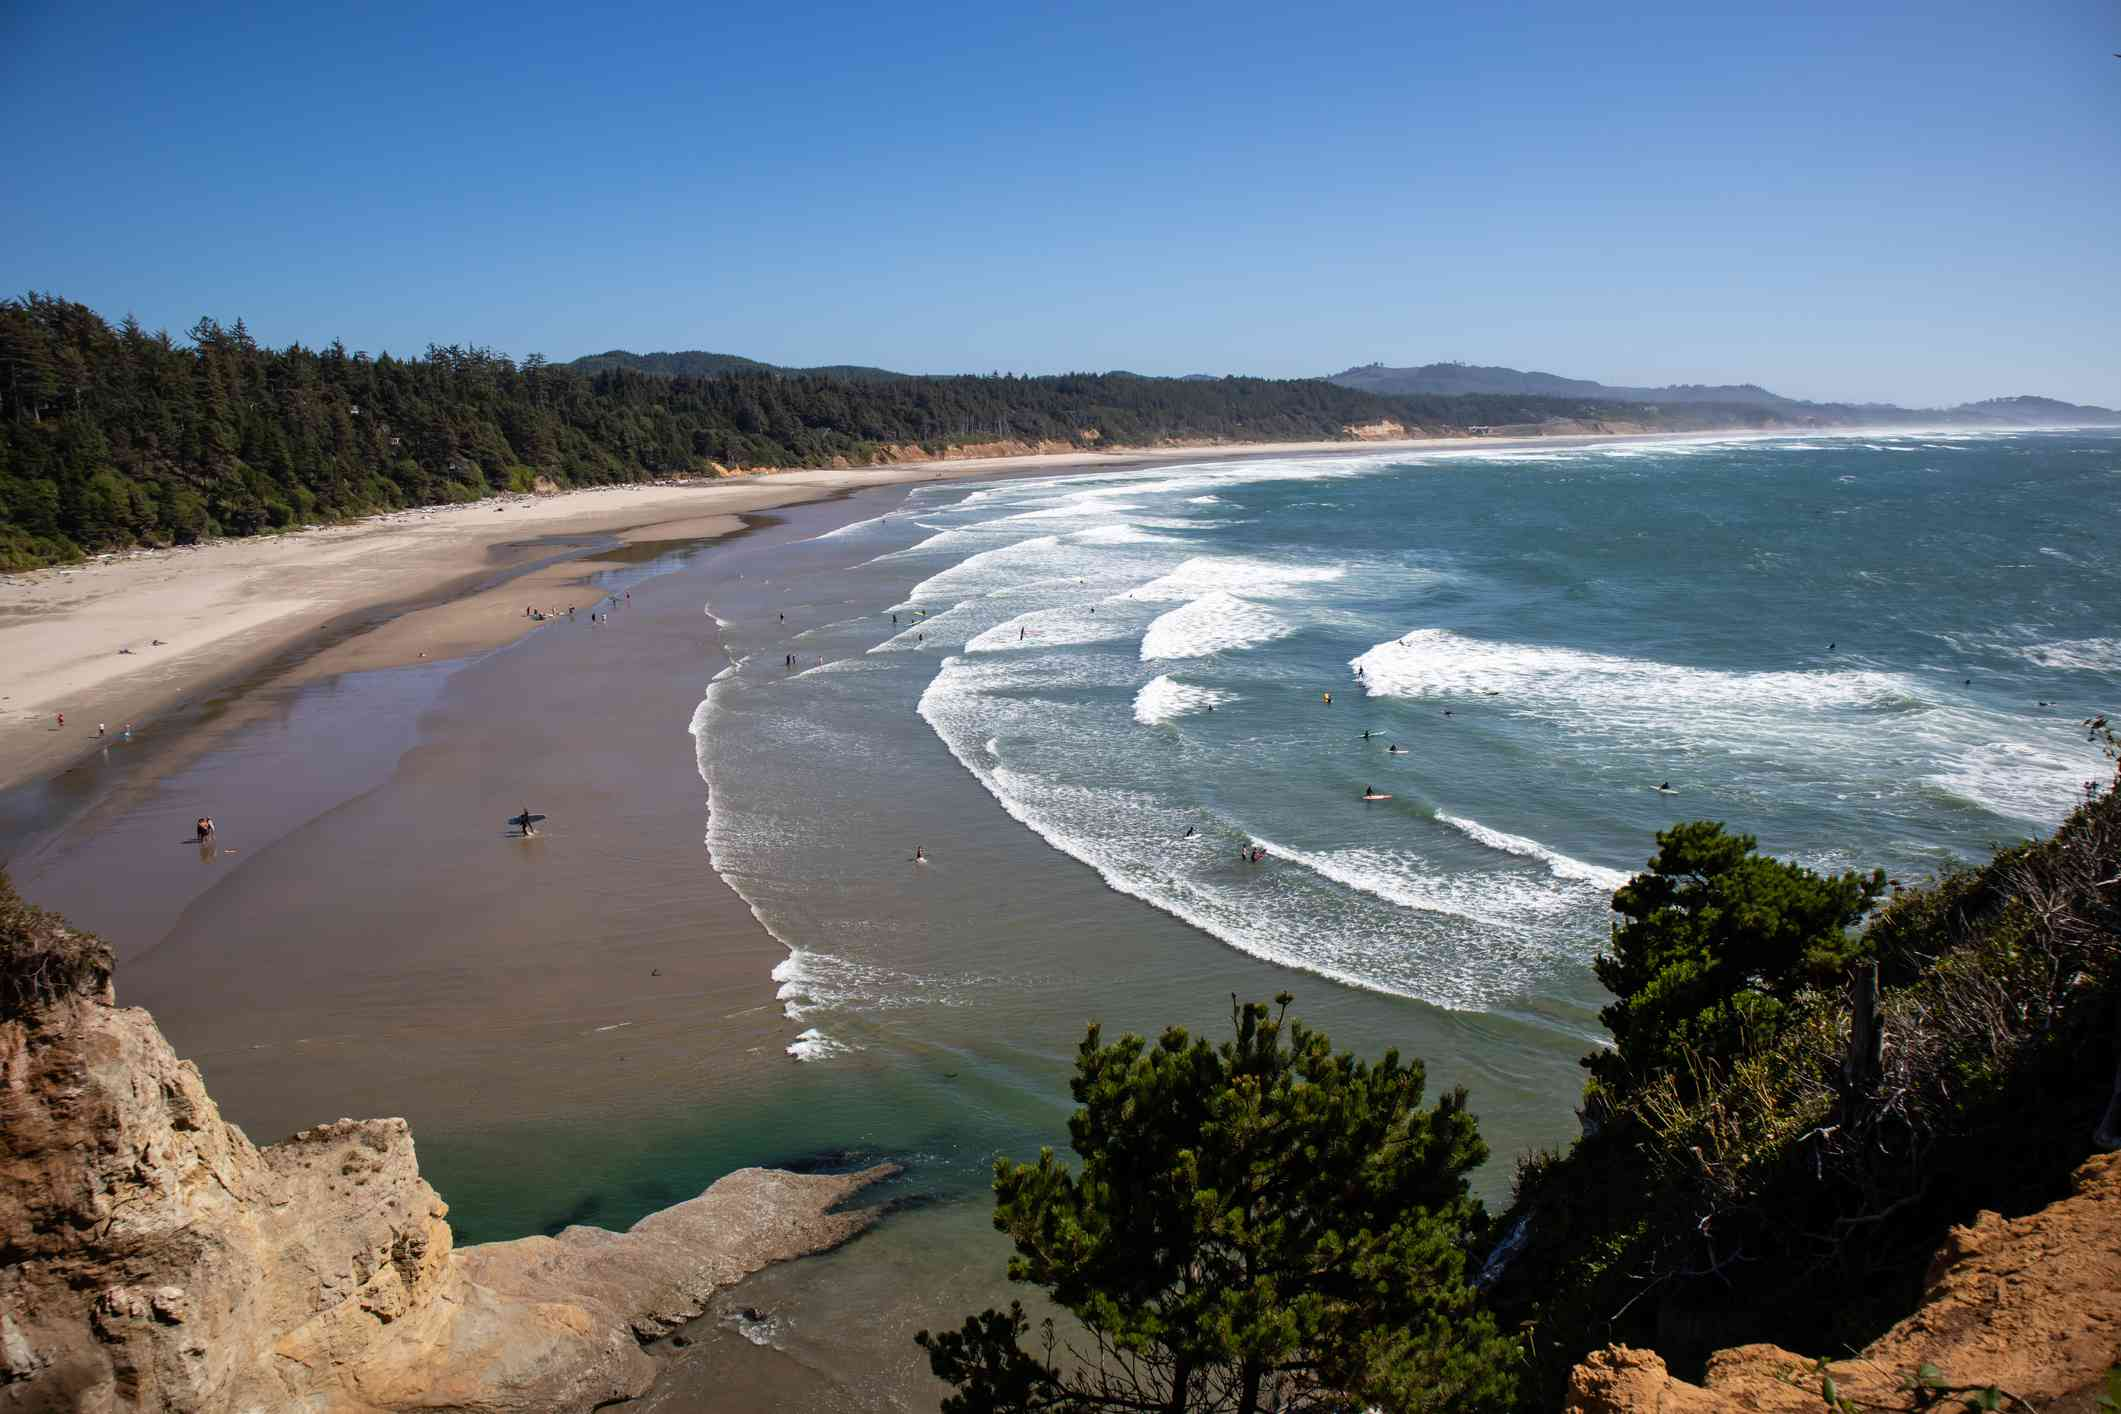 Otter Crest State Scenic Viewpoint at Devils Punch Bowl, Otter Rock, Oregon